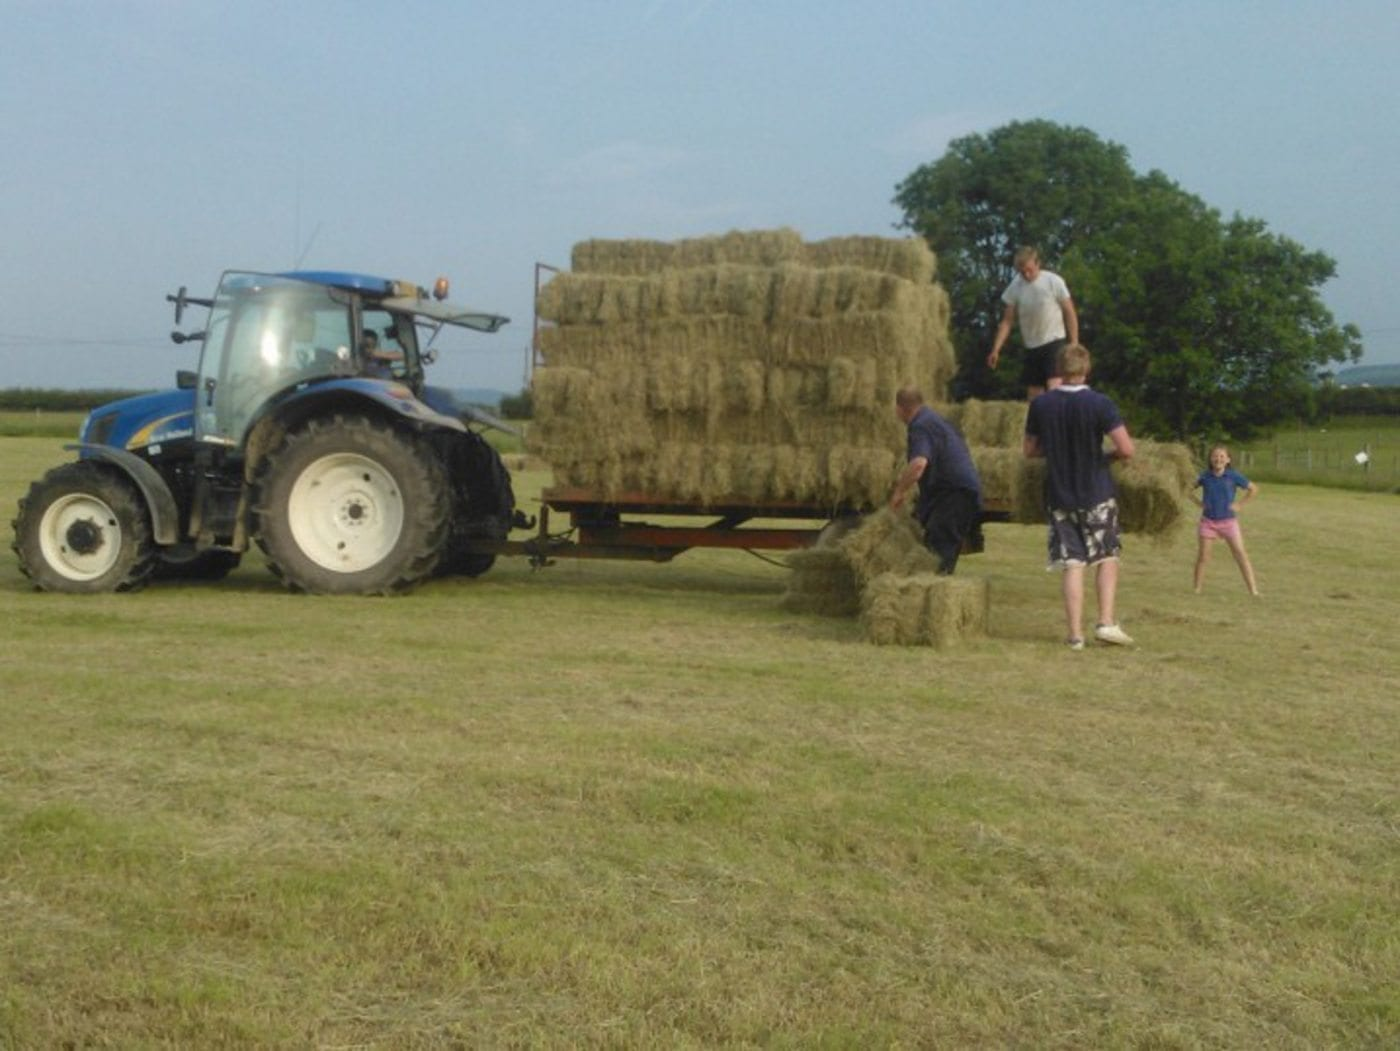 Make hay while the sun shines!